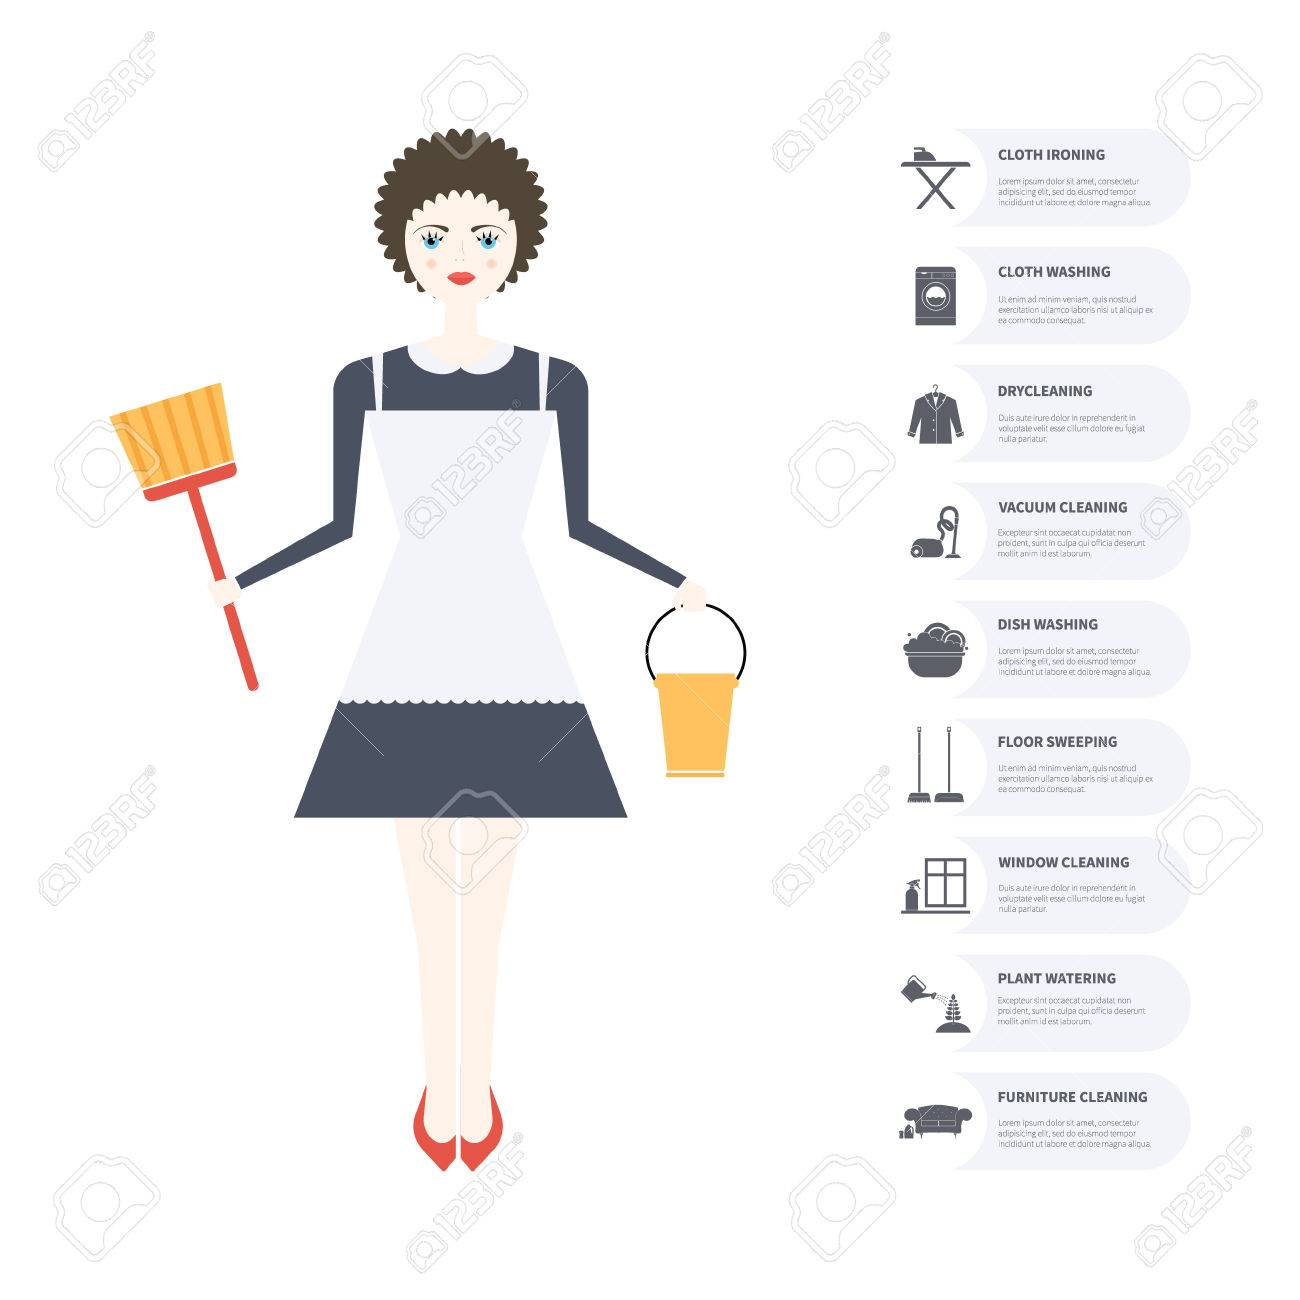 34218684-house-cleaning-infographic-hous